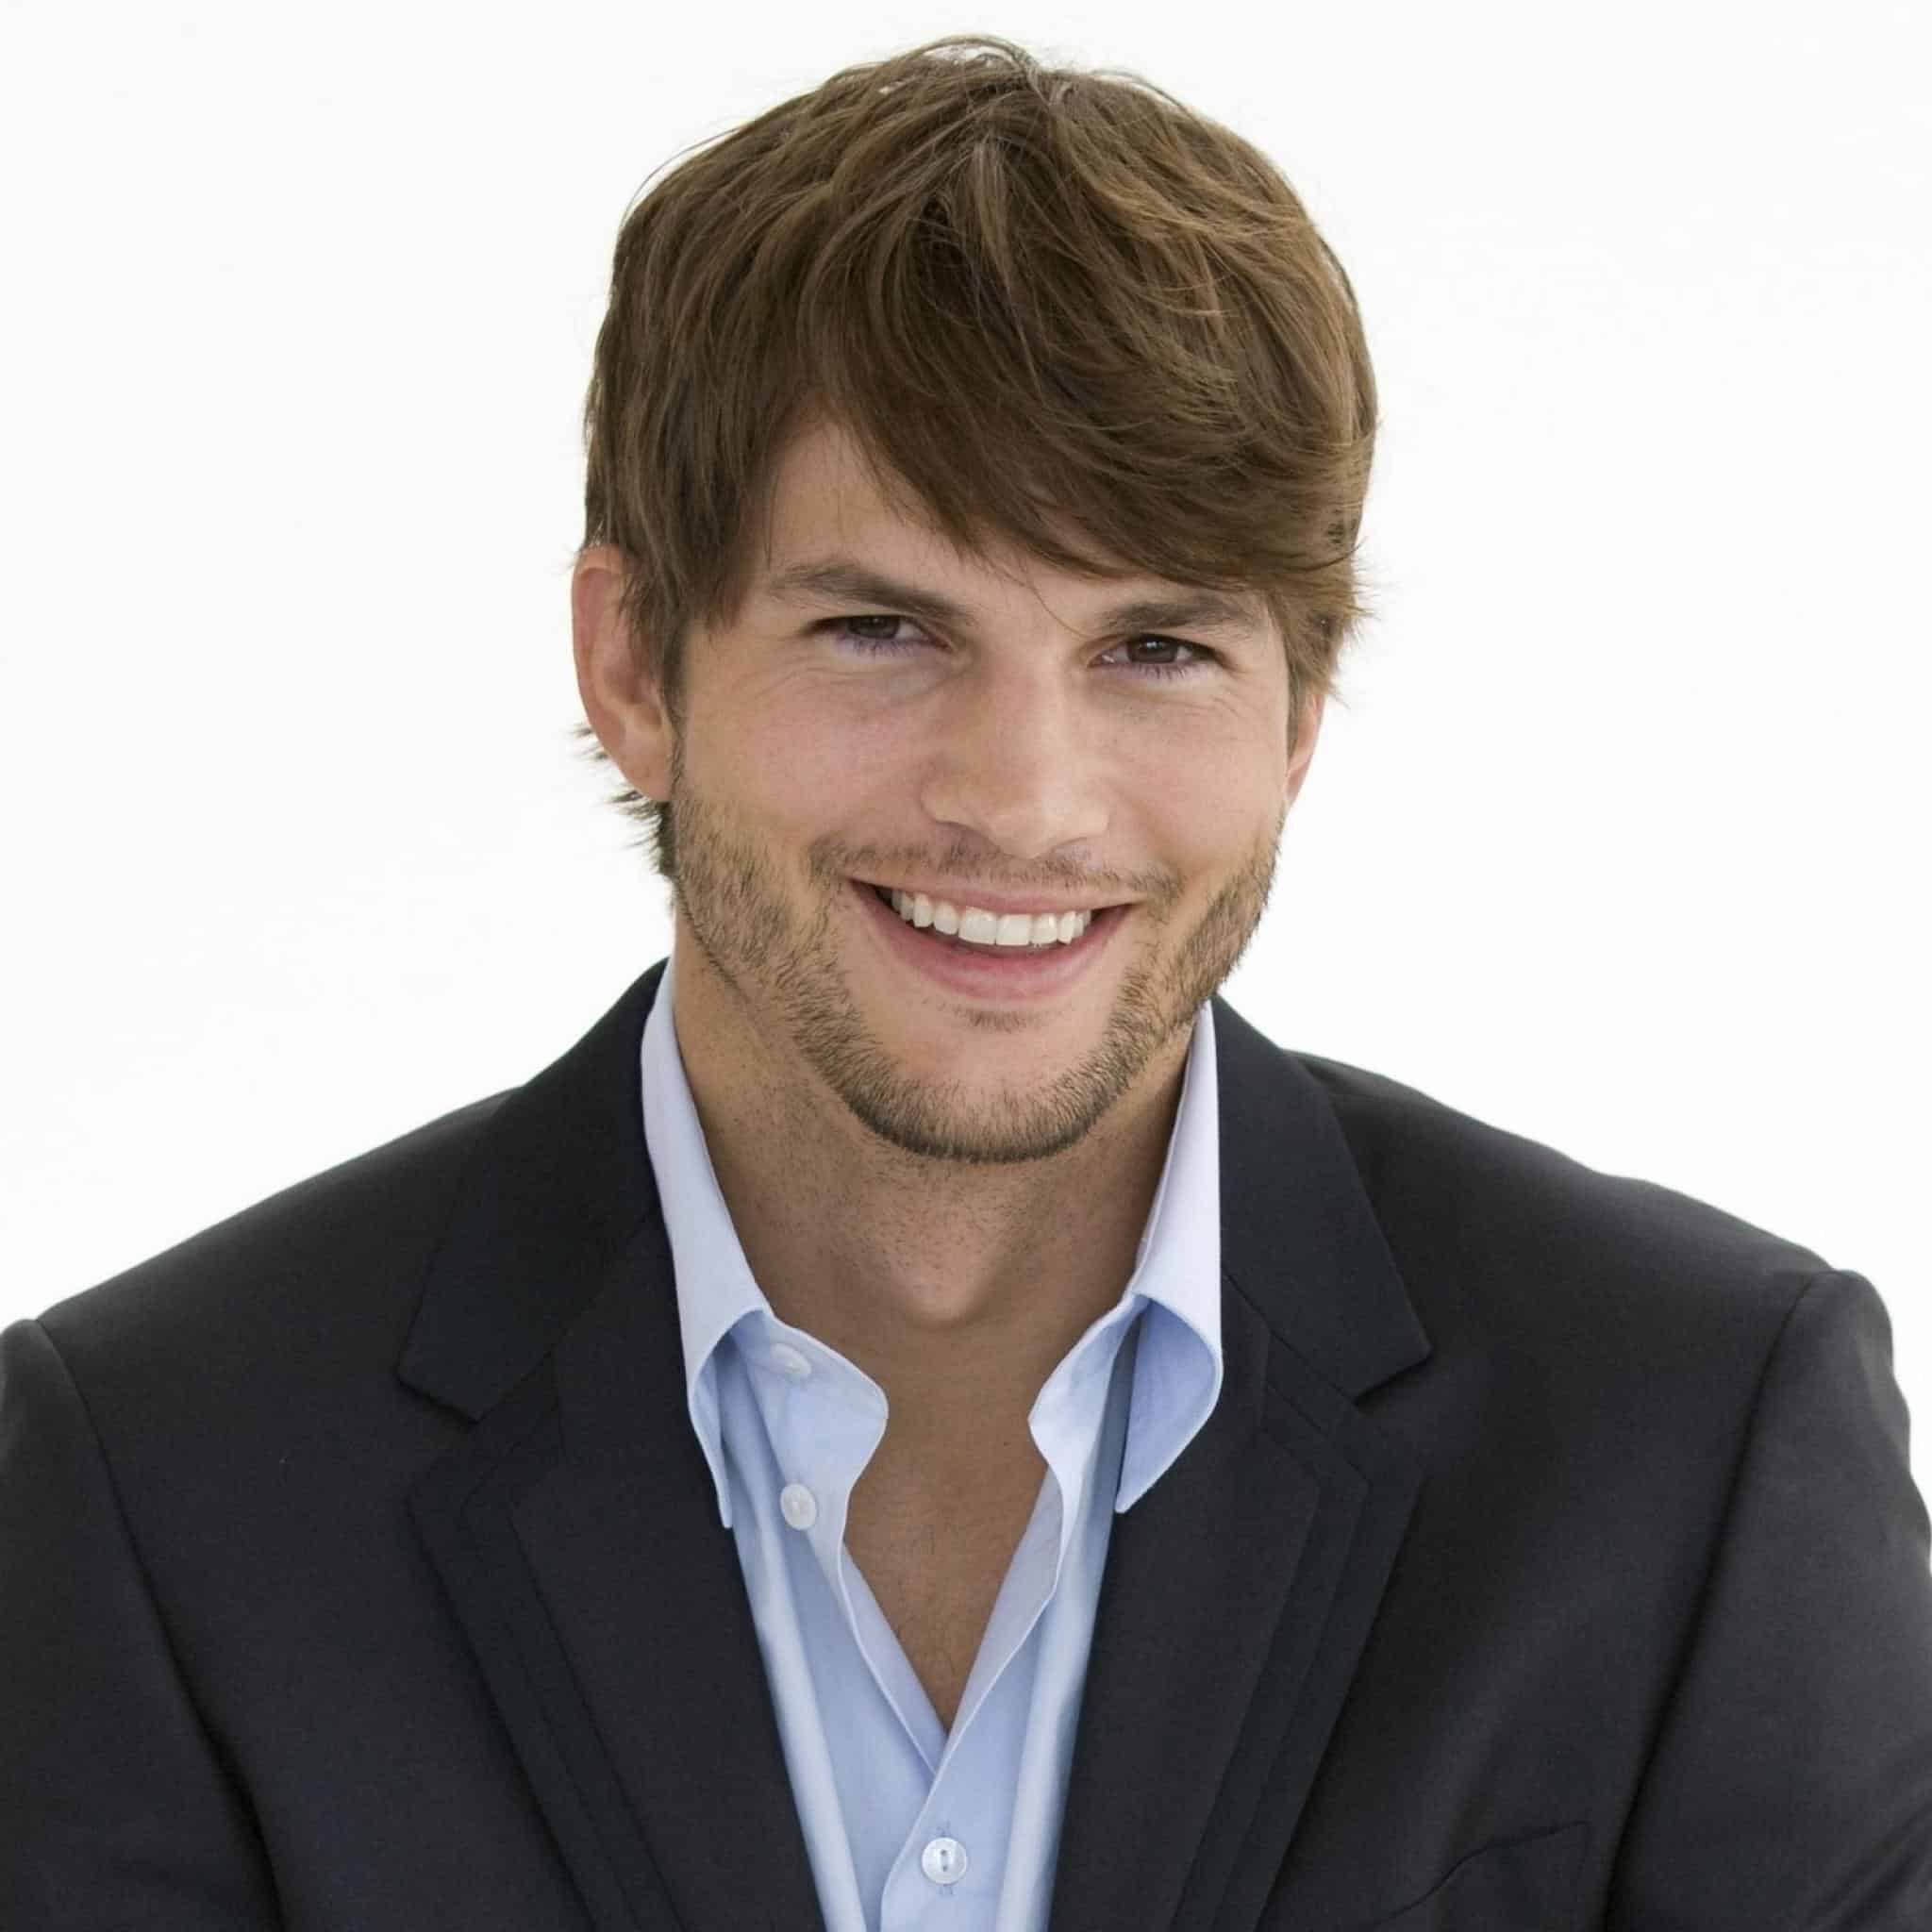 Celebrity of the Week: Ashton Kutcher